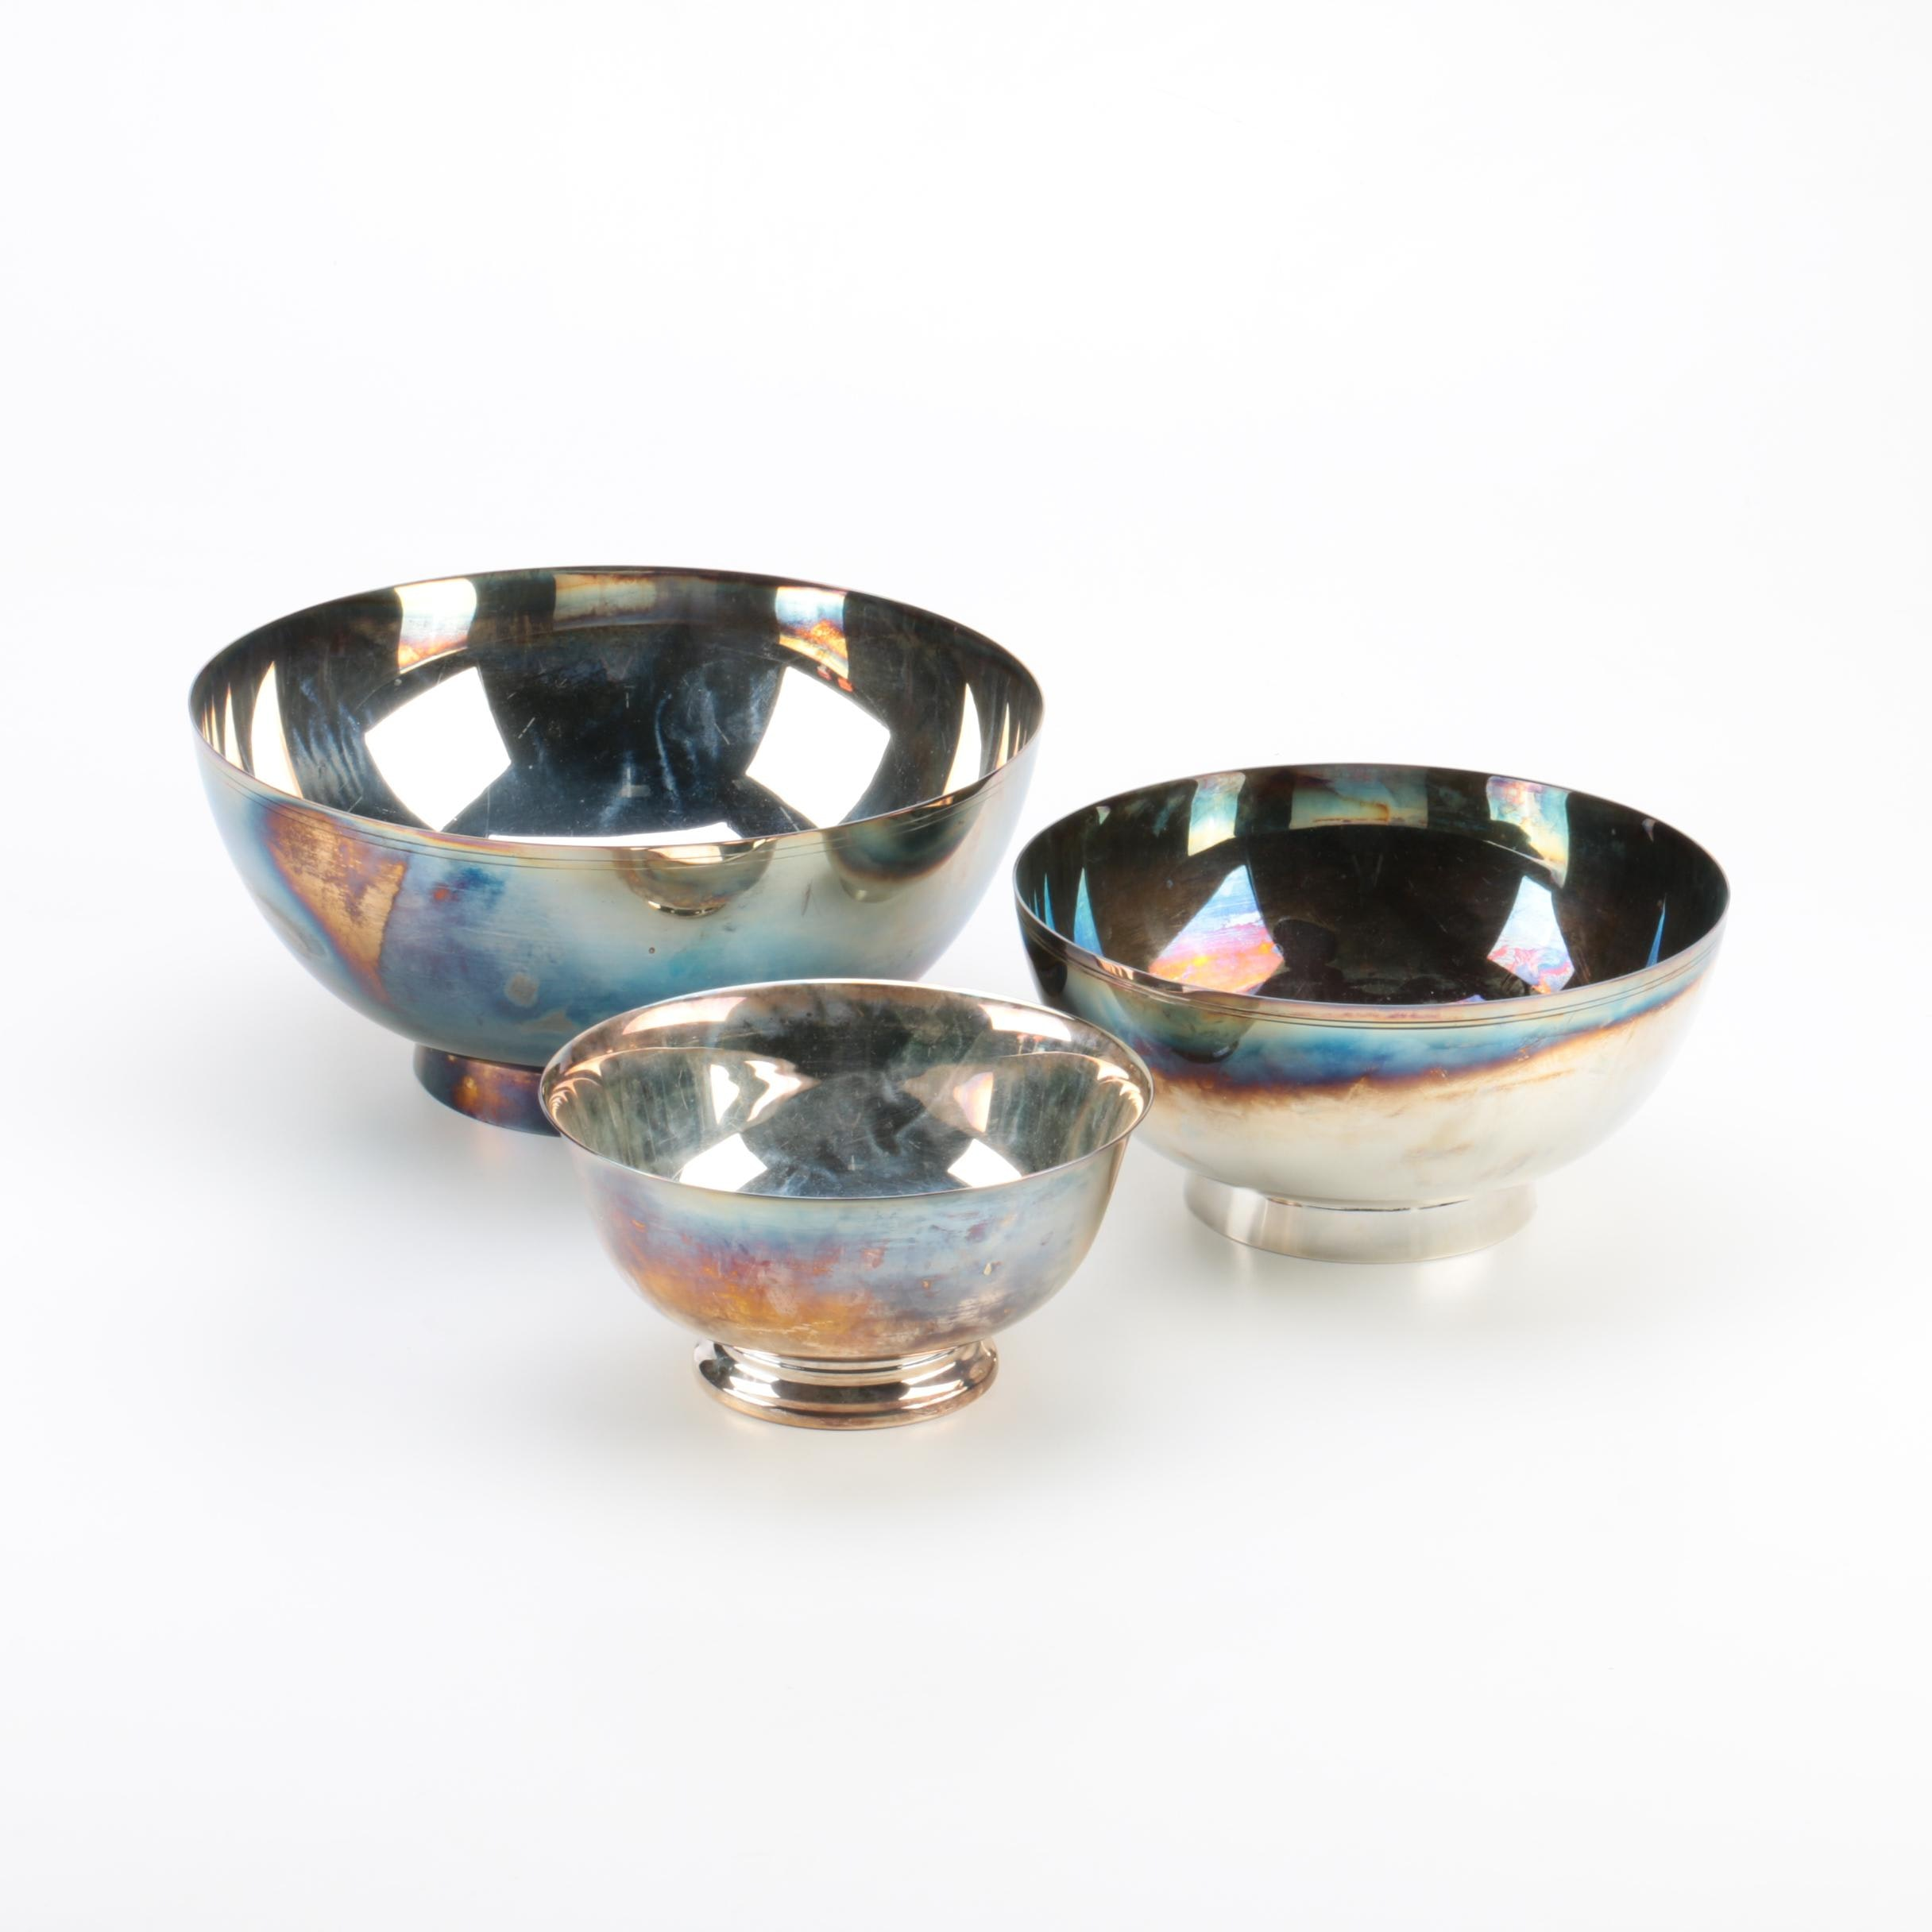 Lunt Silversmiths and Reed & Barton Silver-Plated Bowls